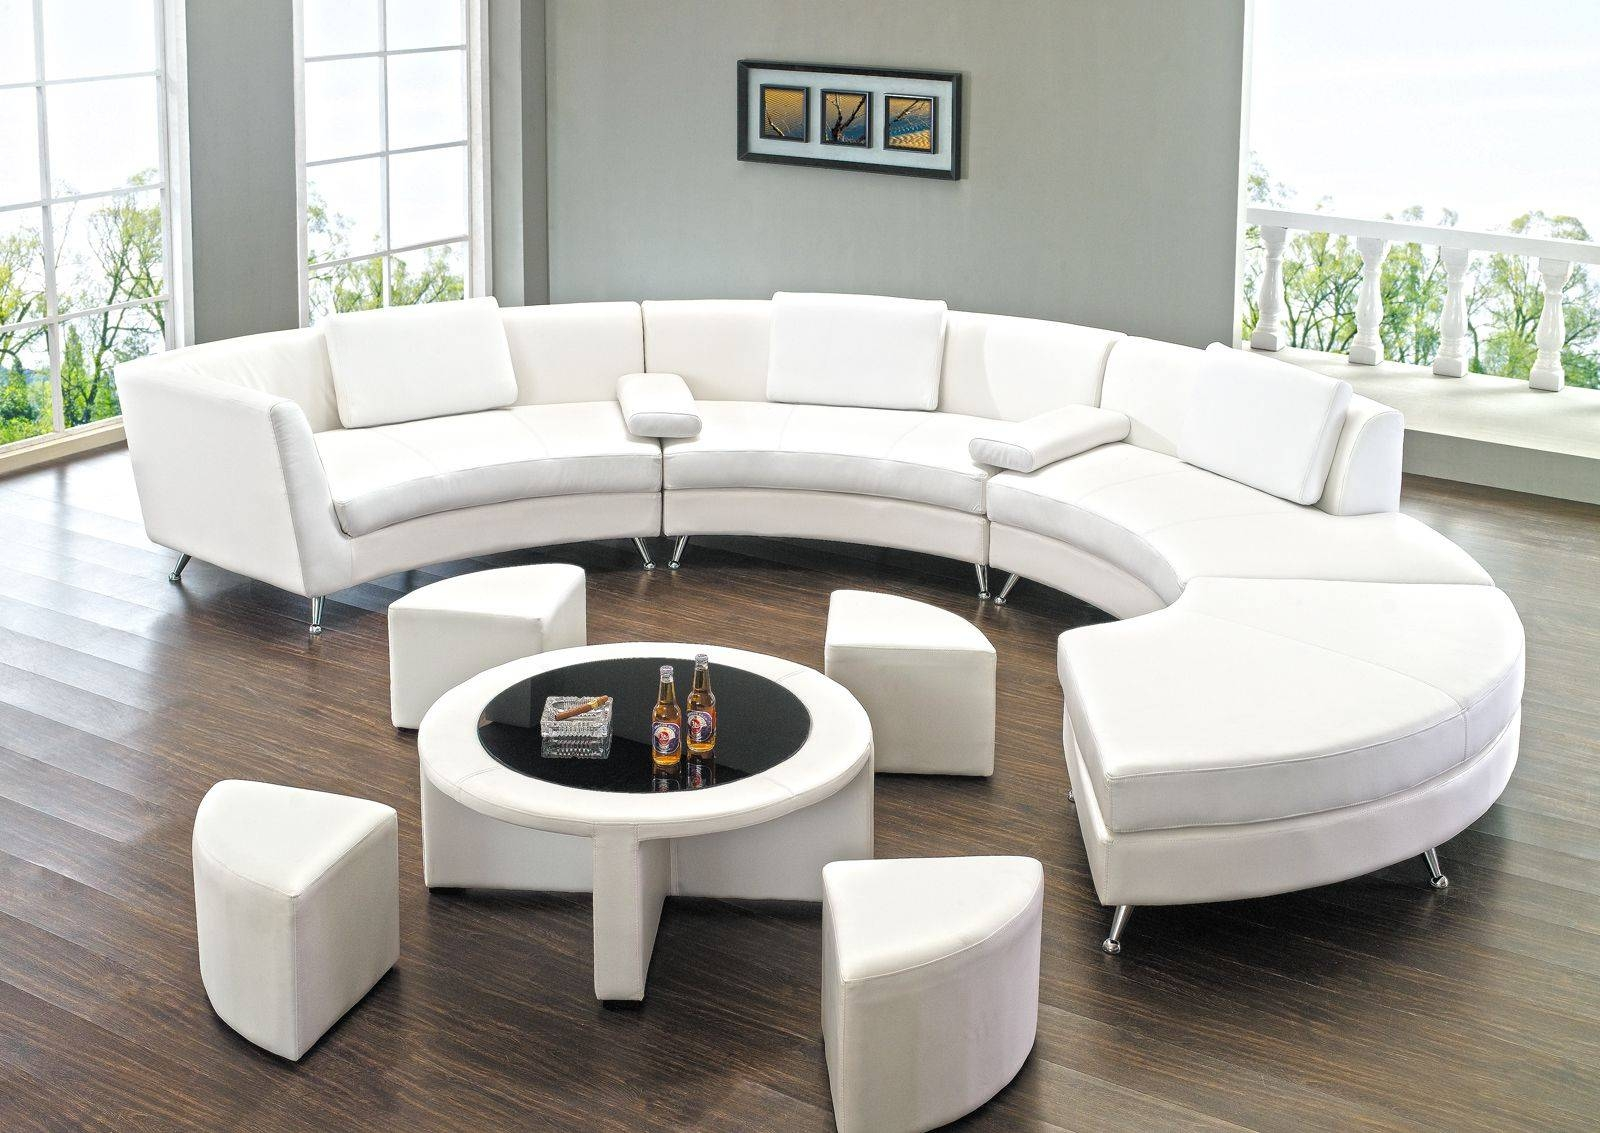 Round Sectional Sofa For Unique Seating Alternative - Traba Homes intended for Circle Sectional Sofa (Image 18 of 30)